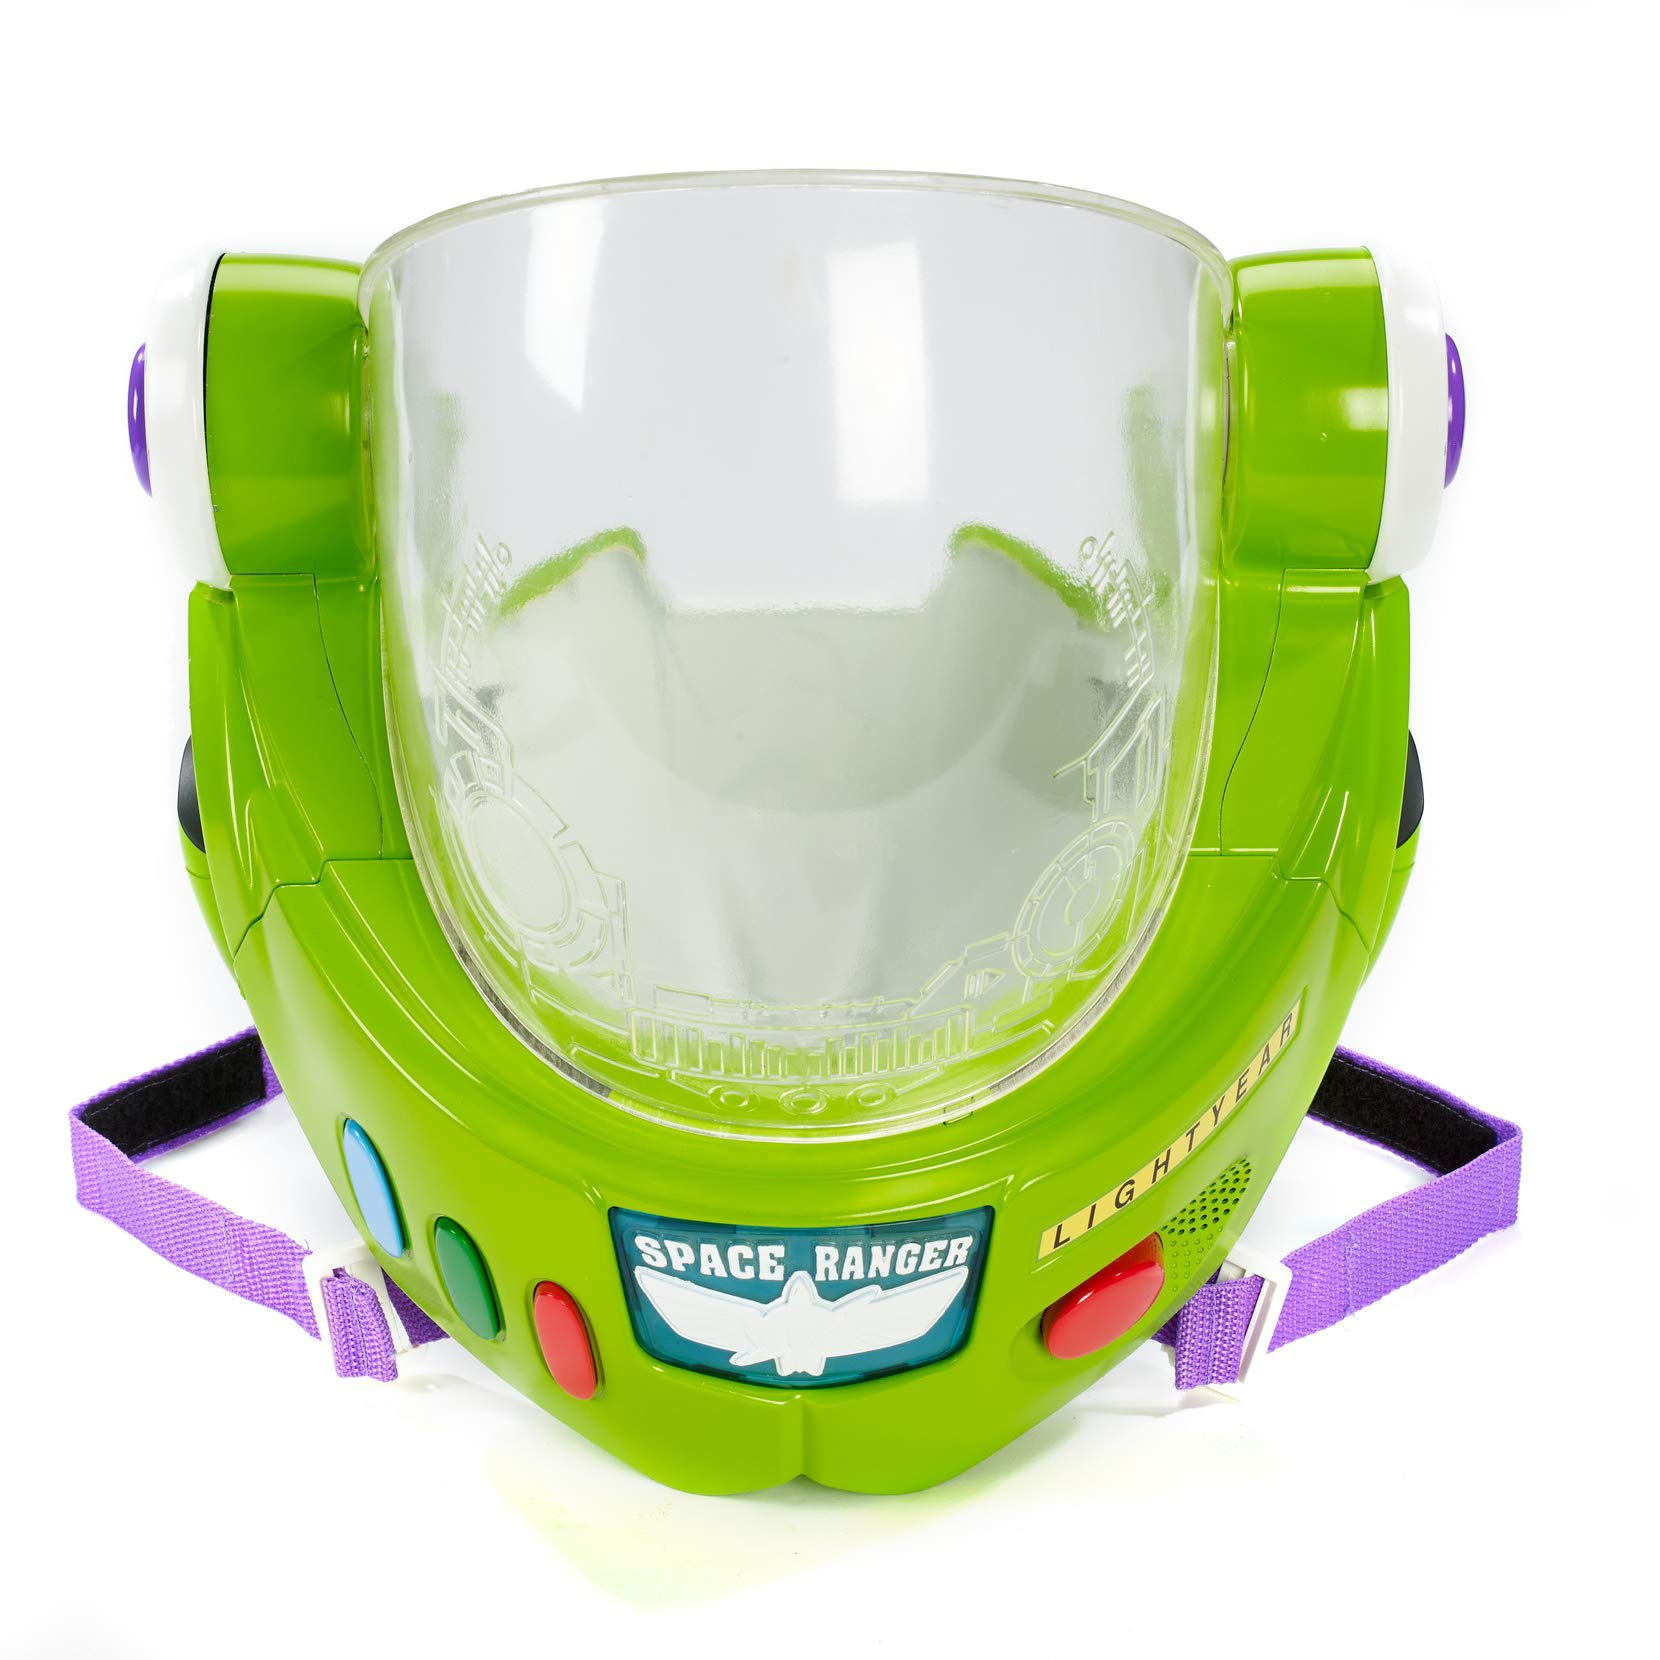 Toy Story Disney Pixar 4 Buzz Lightyear Space Ranger Armor with Jet Pack by Toy Story (Image #7)